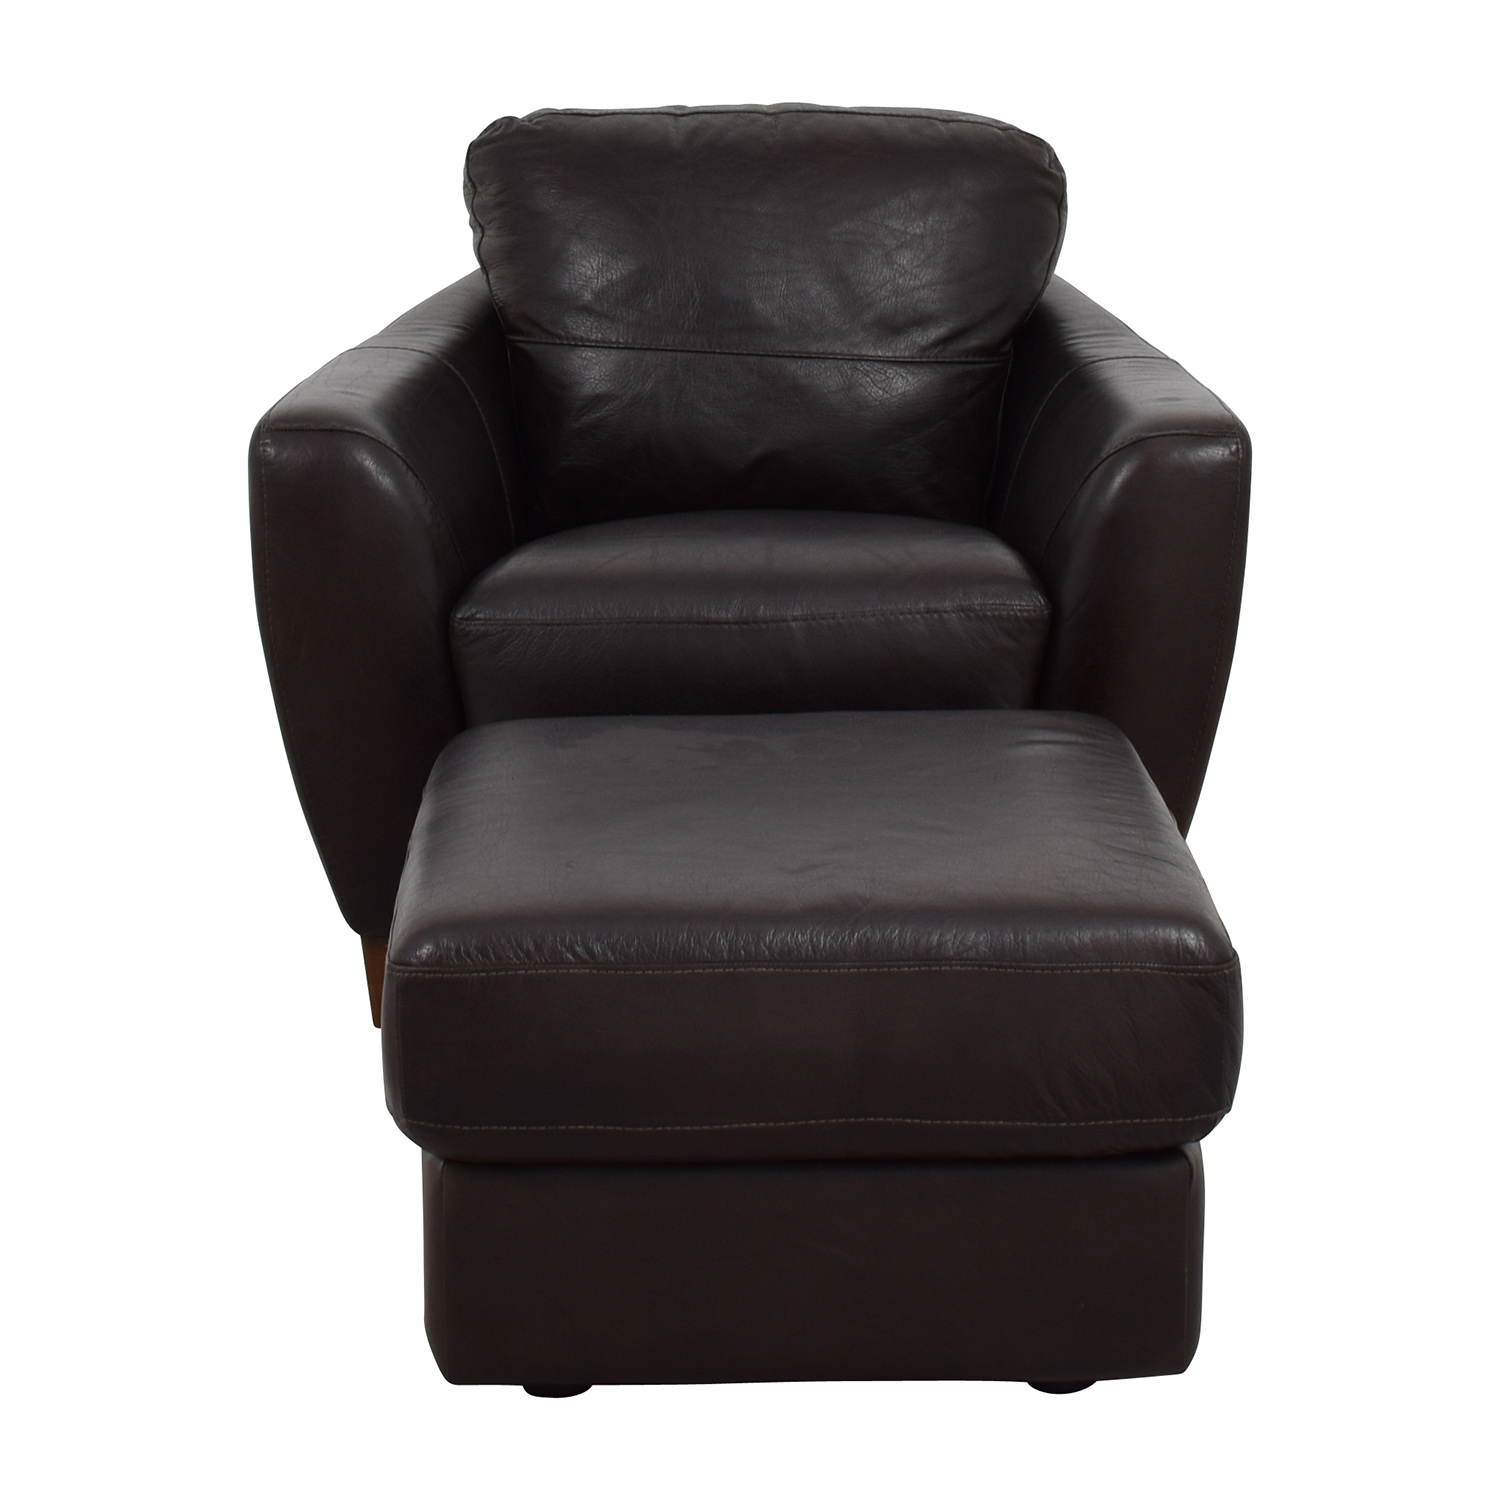 Sofaitalia Sofitalia Dark Brown Leather